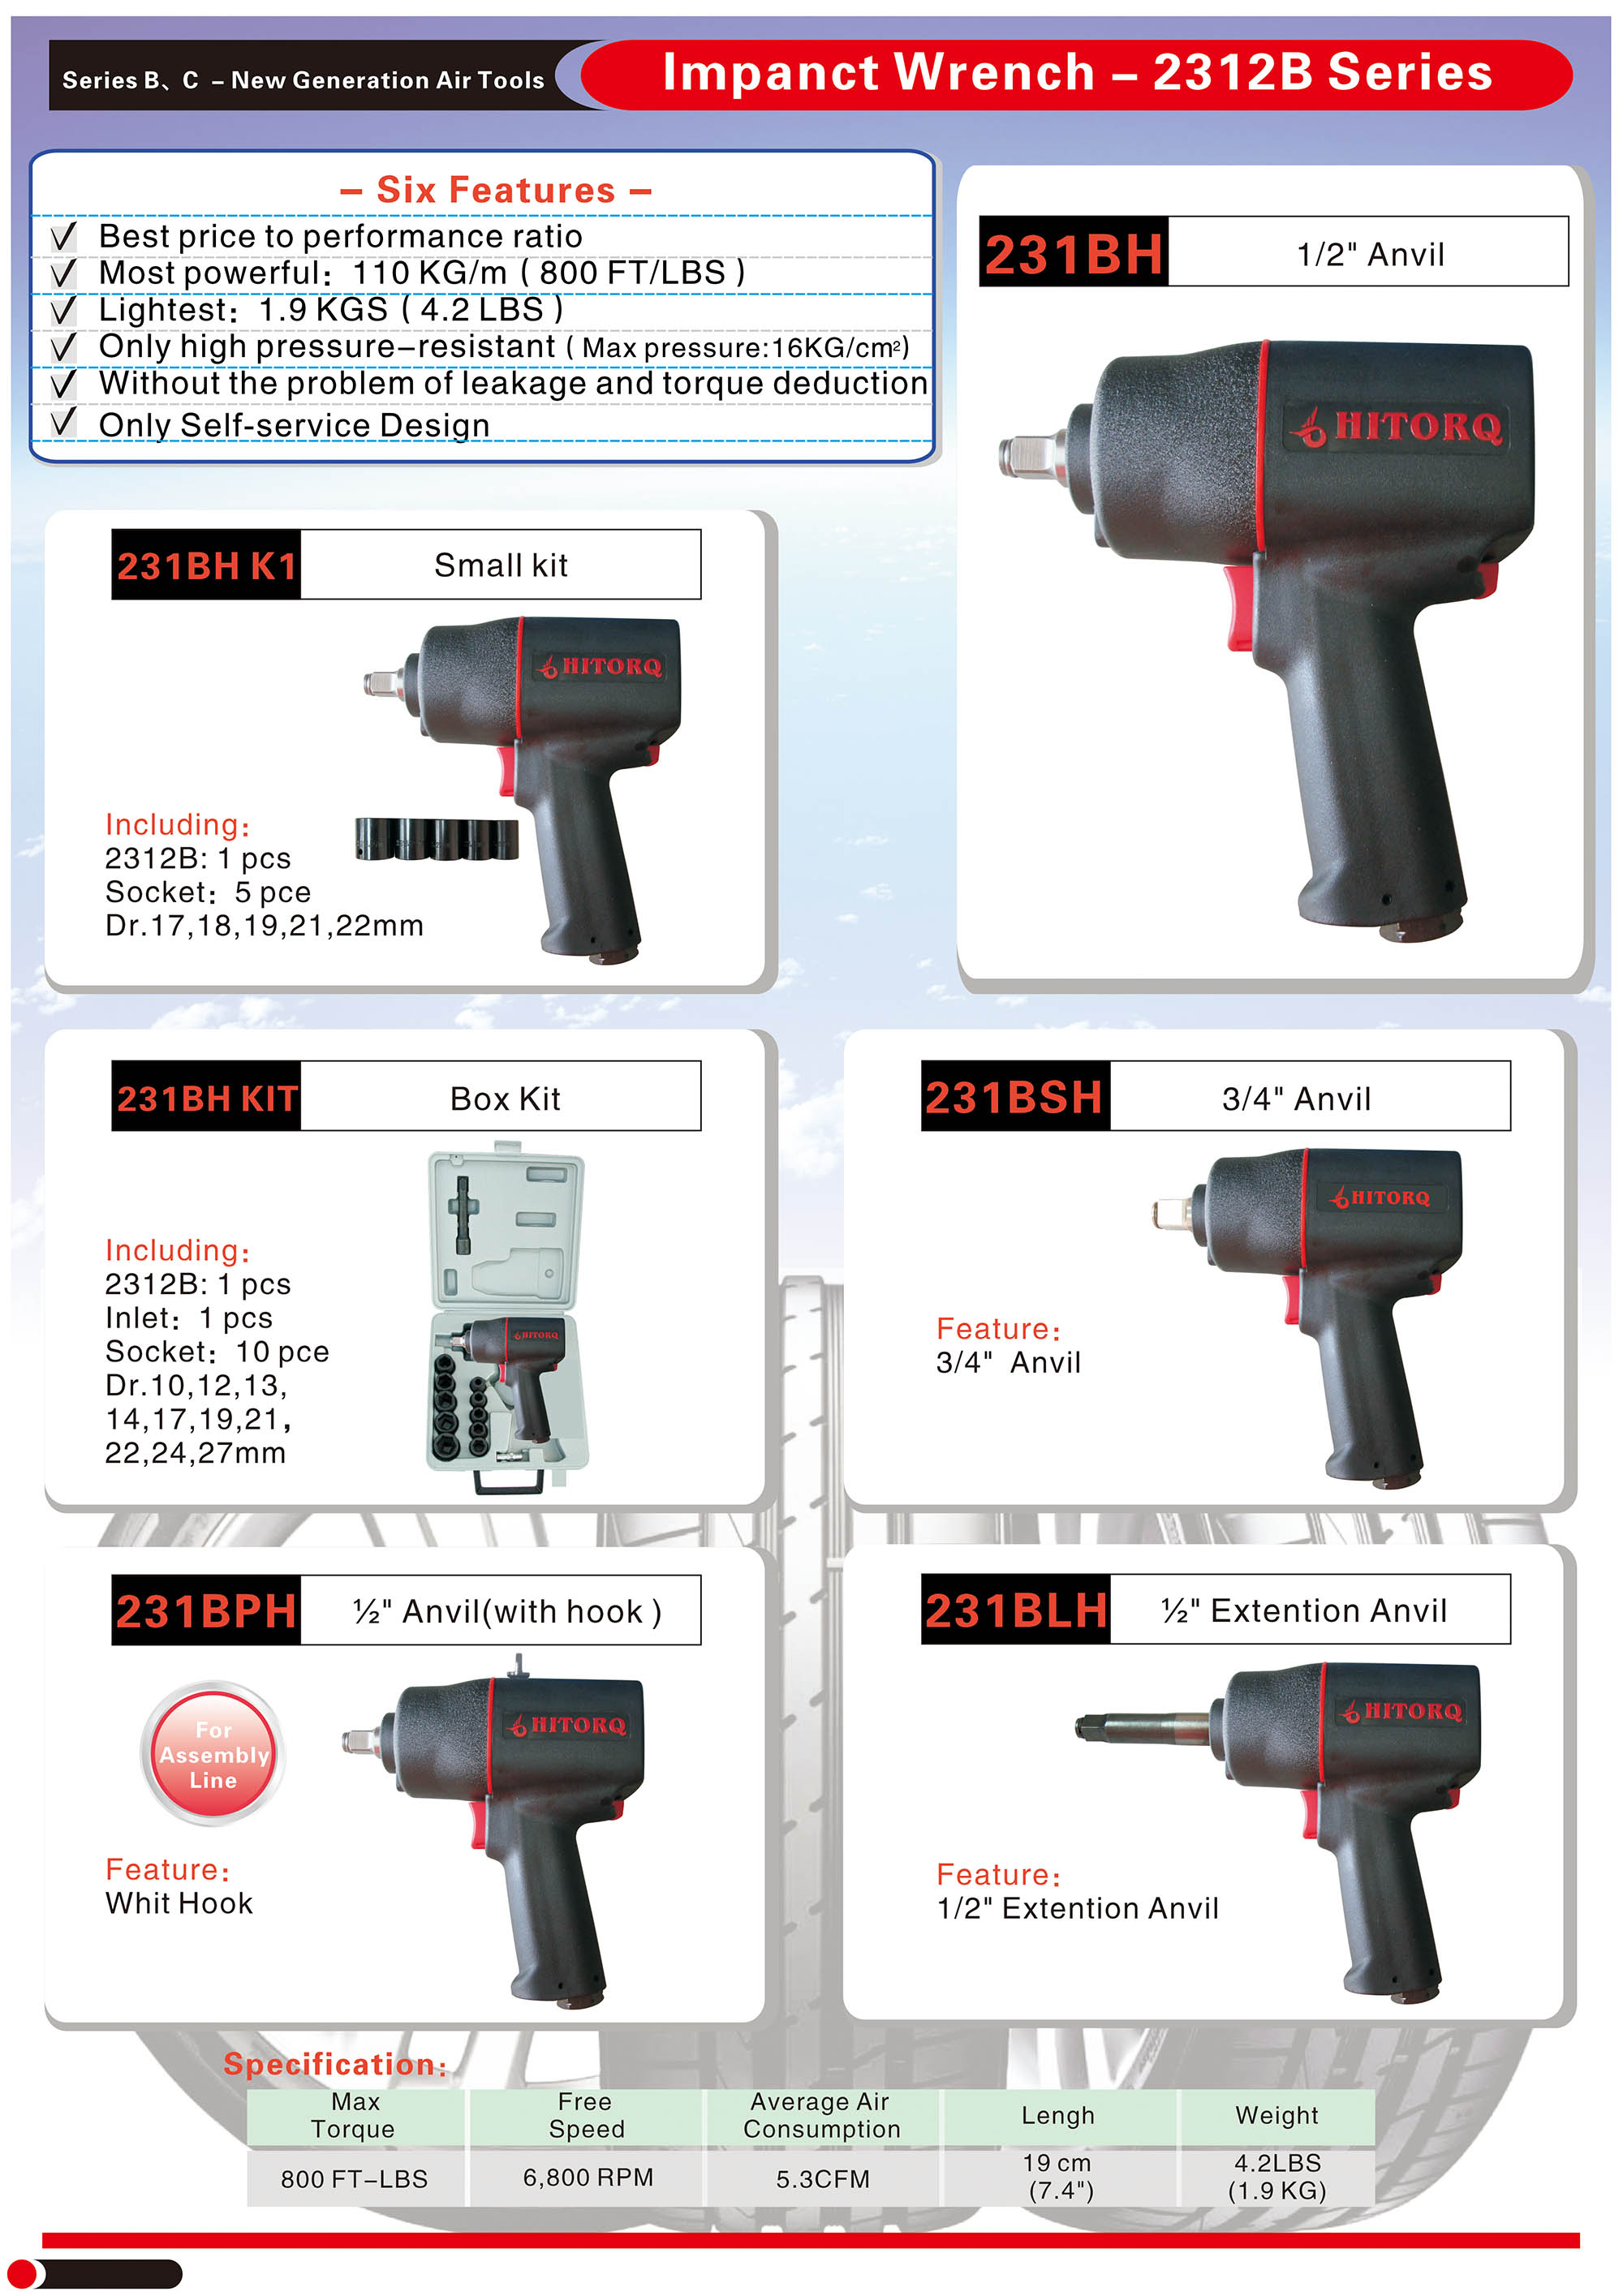 【HITORQ】【2312B】High Pressure-resistant Composite Impact Wrench